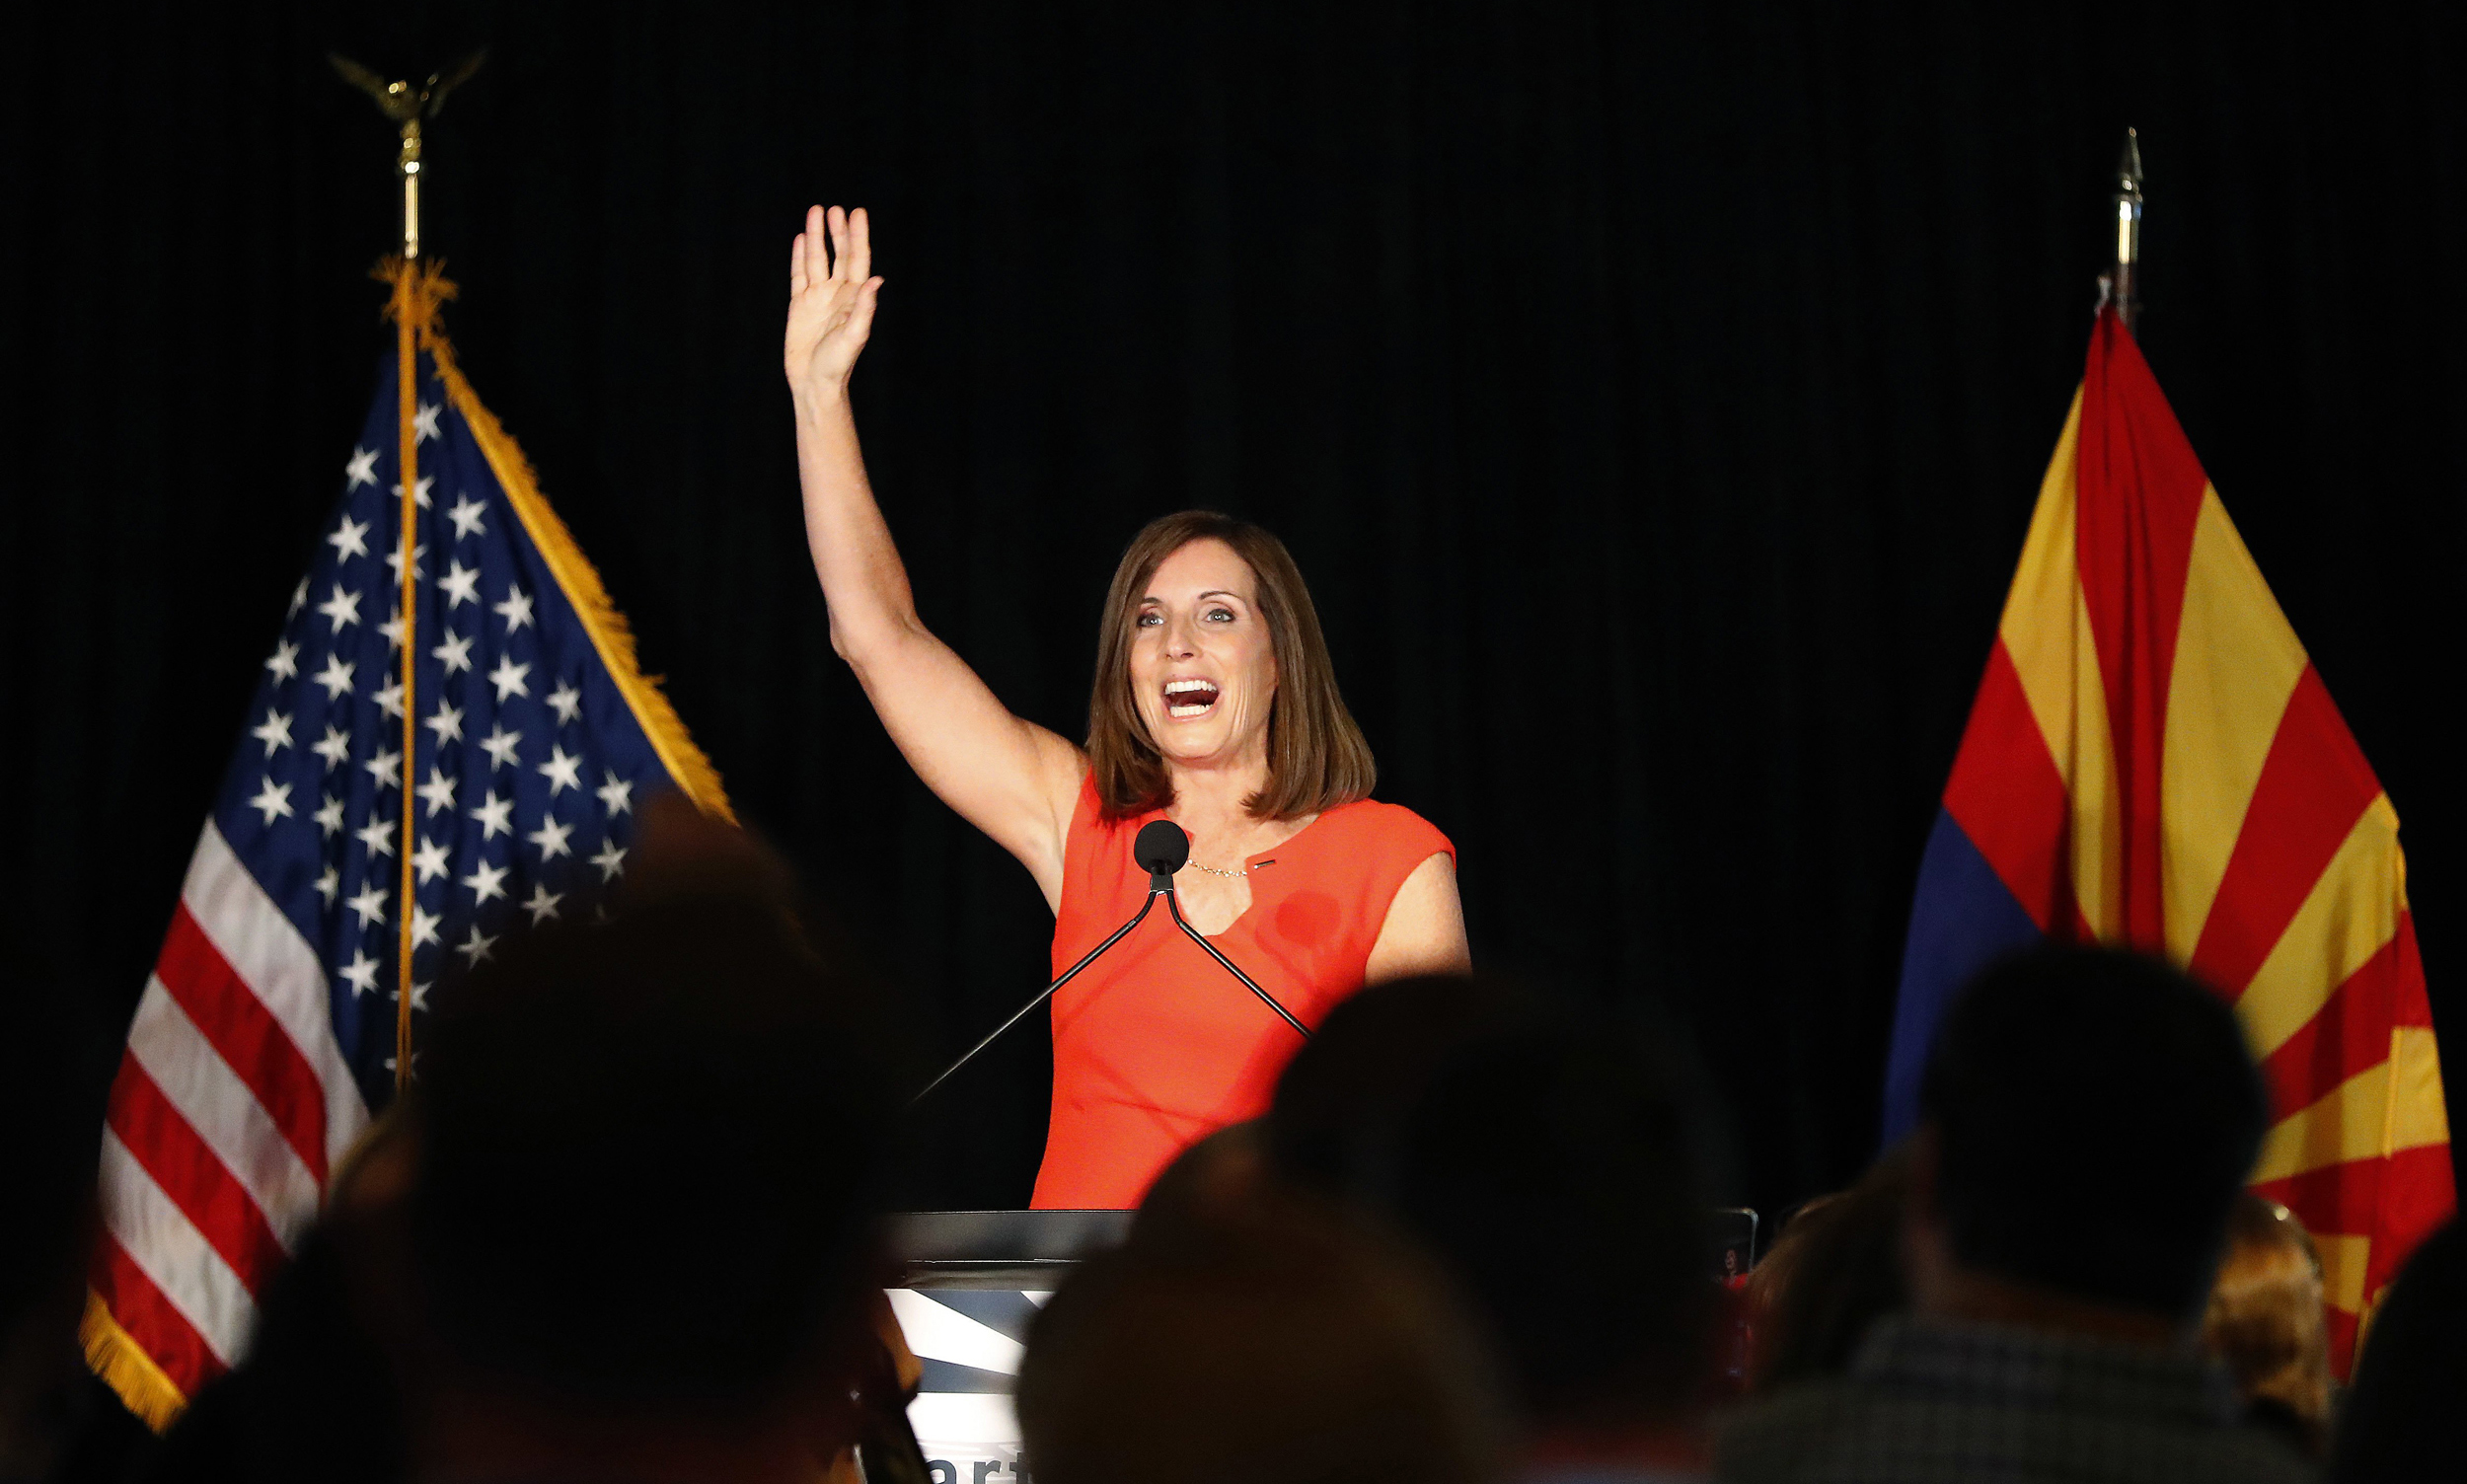 Republicans wave the flag in key Senate races. Is that their best message?